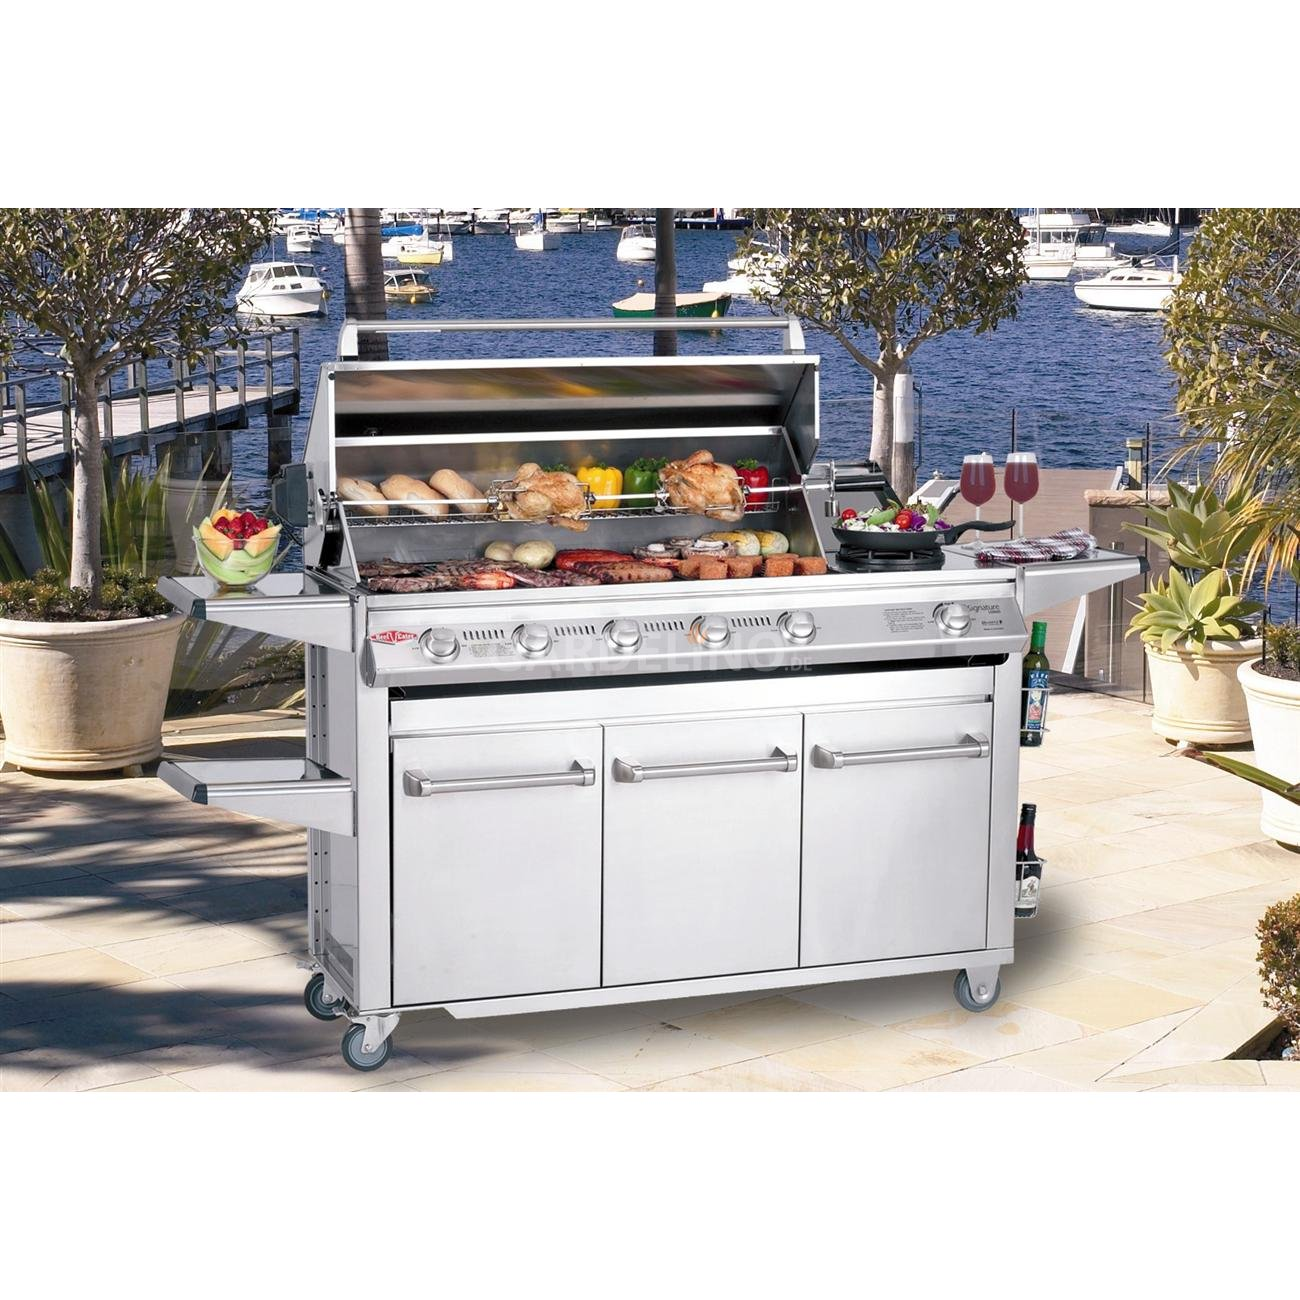 Beefeater Bbq Gasgrill Trolley Signature Sl 4000